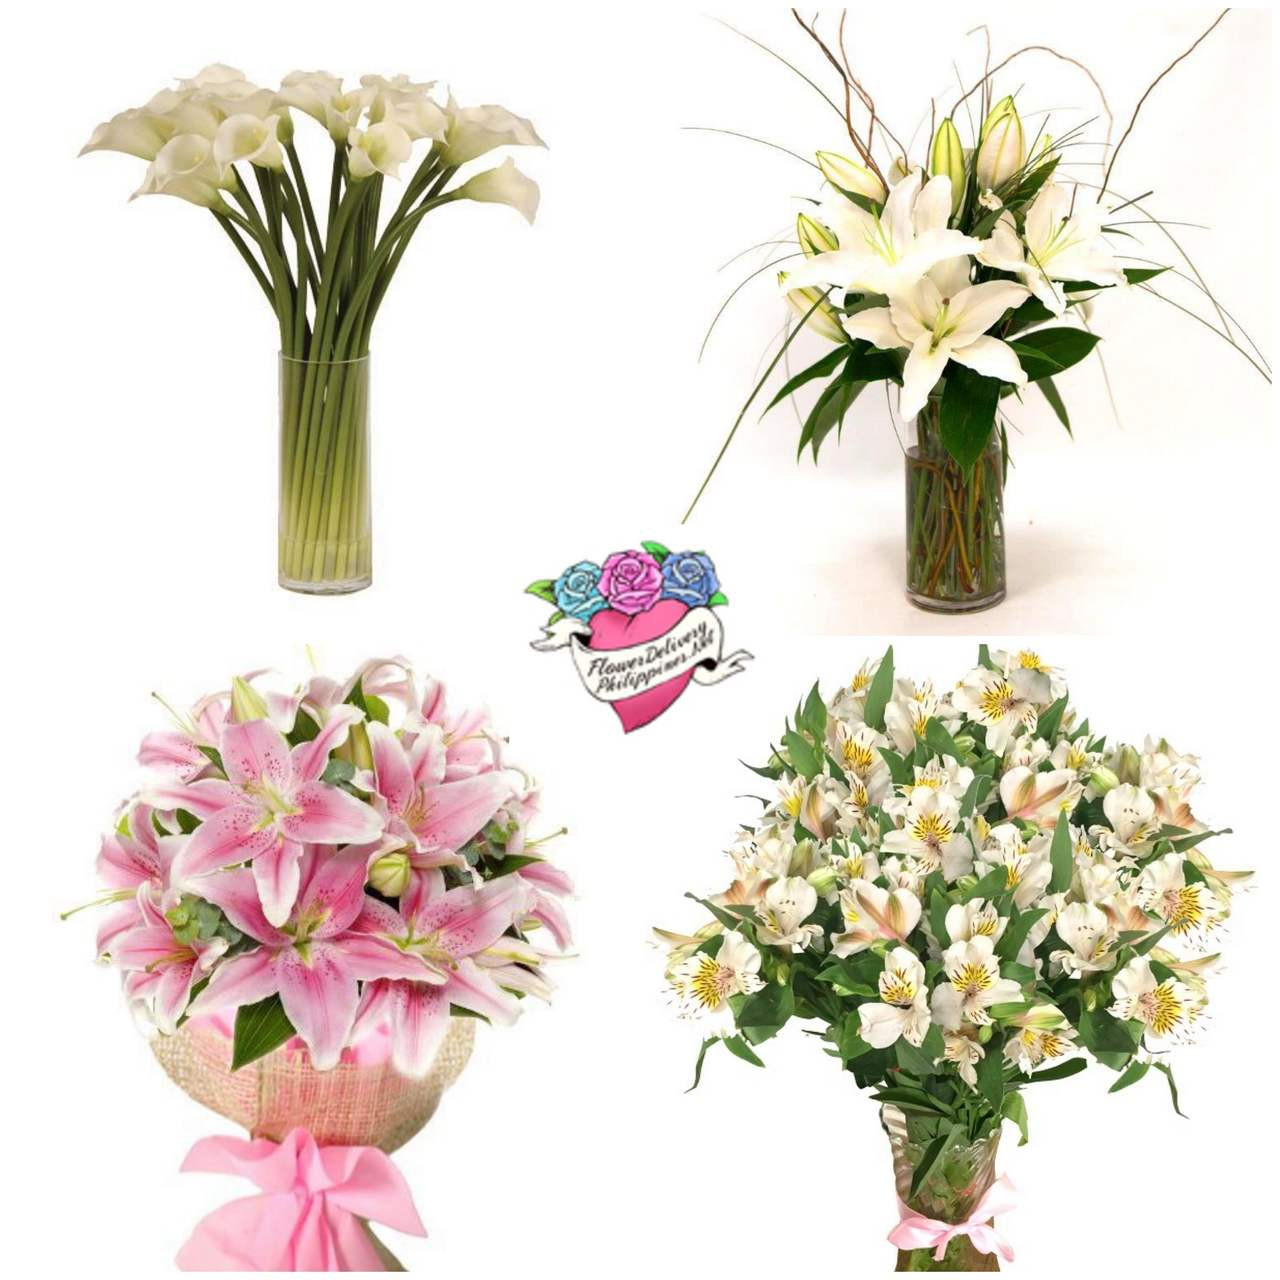 Lilies Lovers Flower Subscription